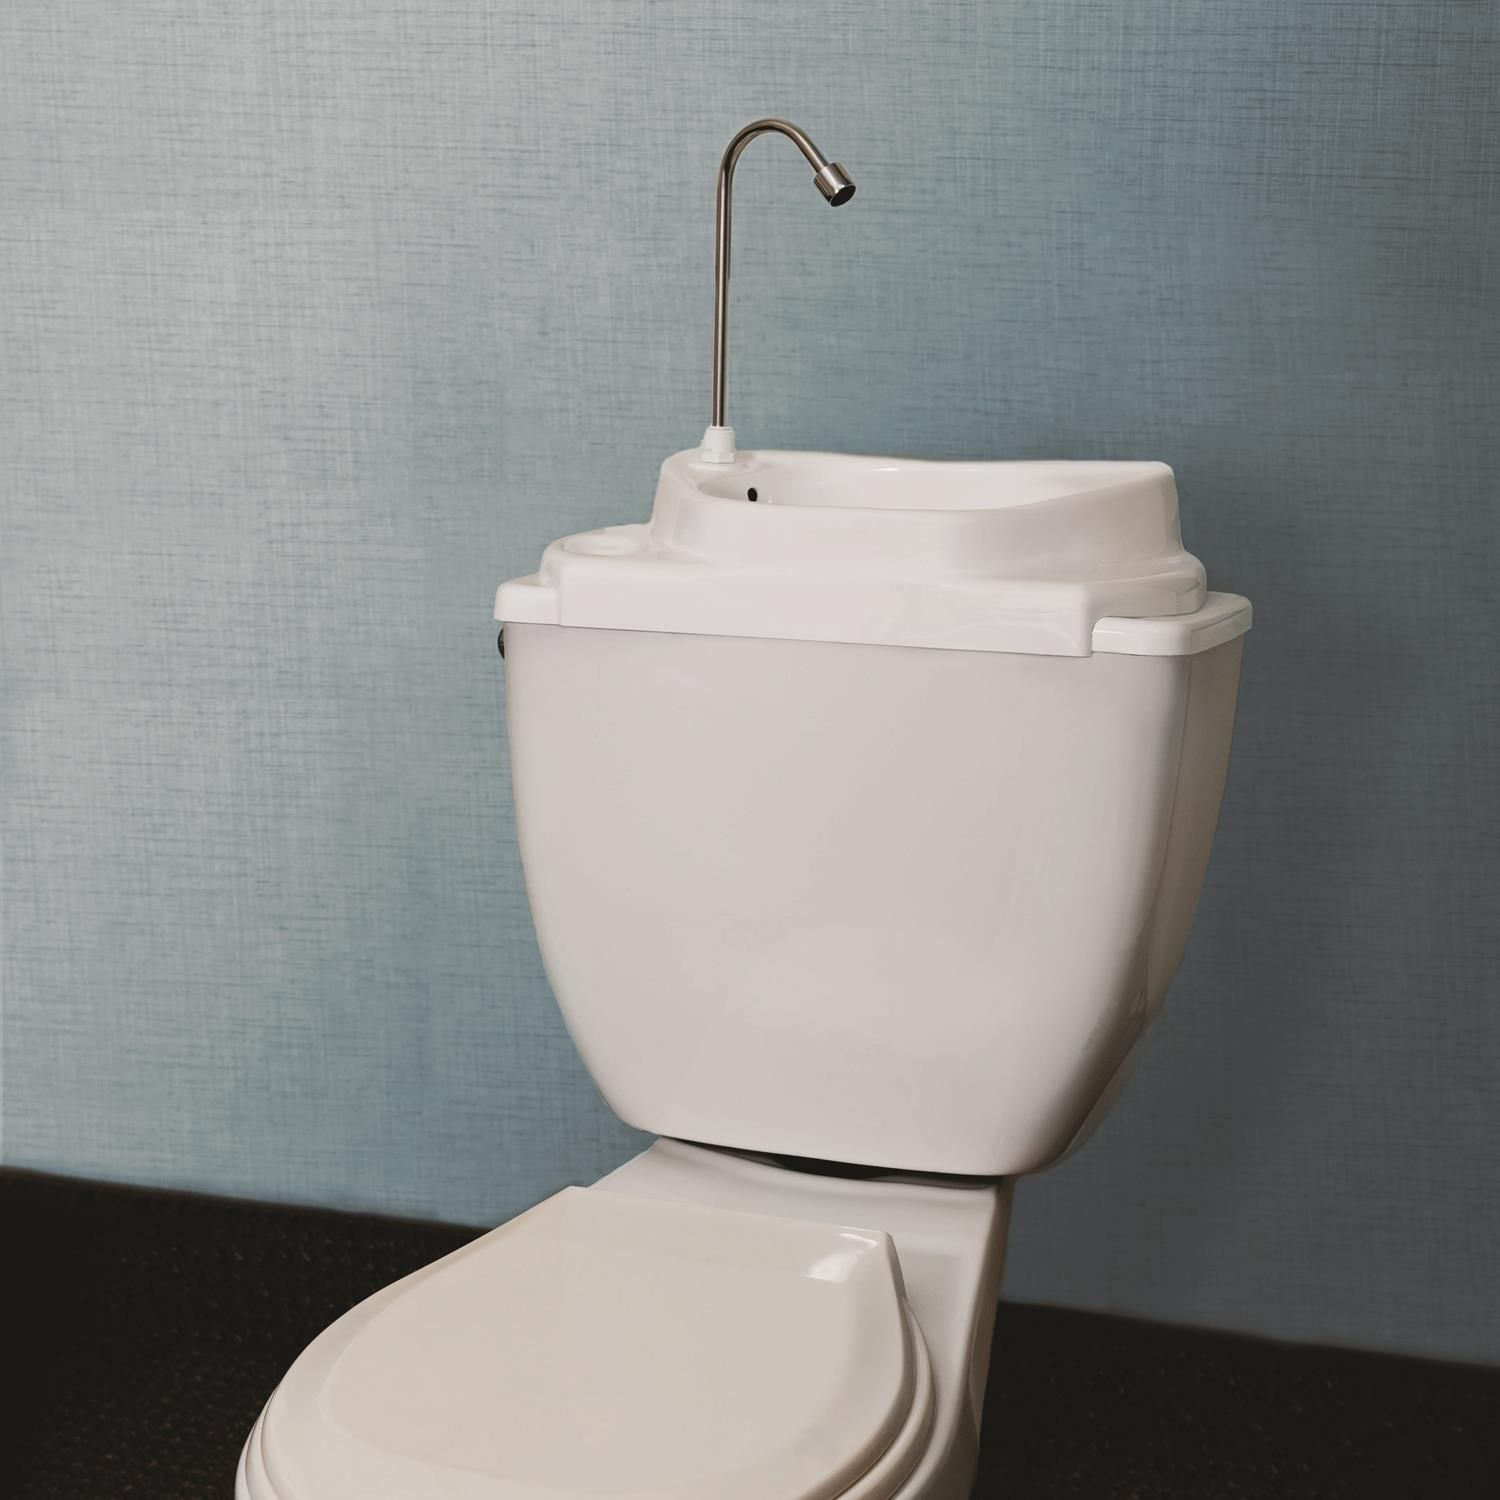 The Sinkpositive Basin Replaces Your Toilet Lid Water